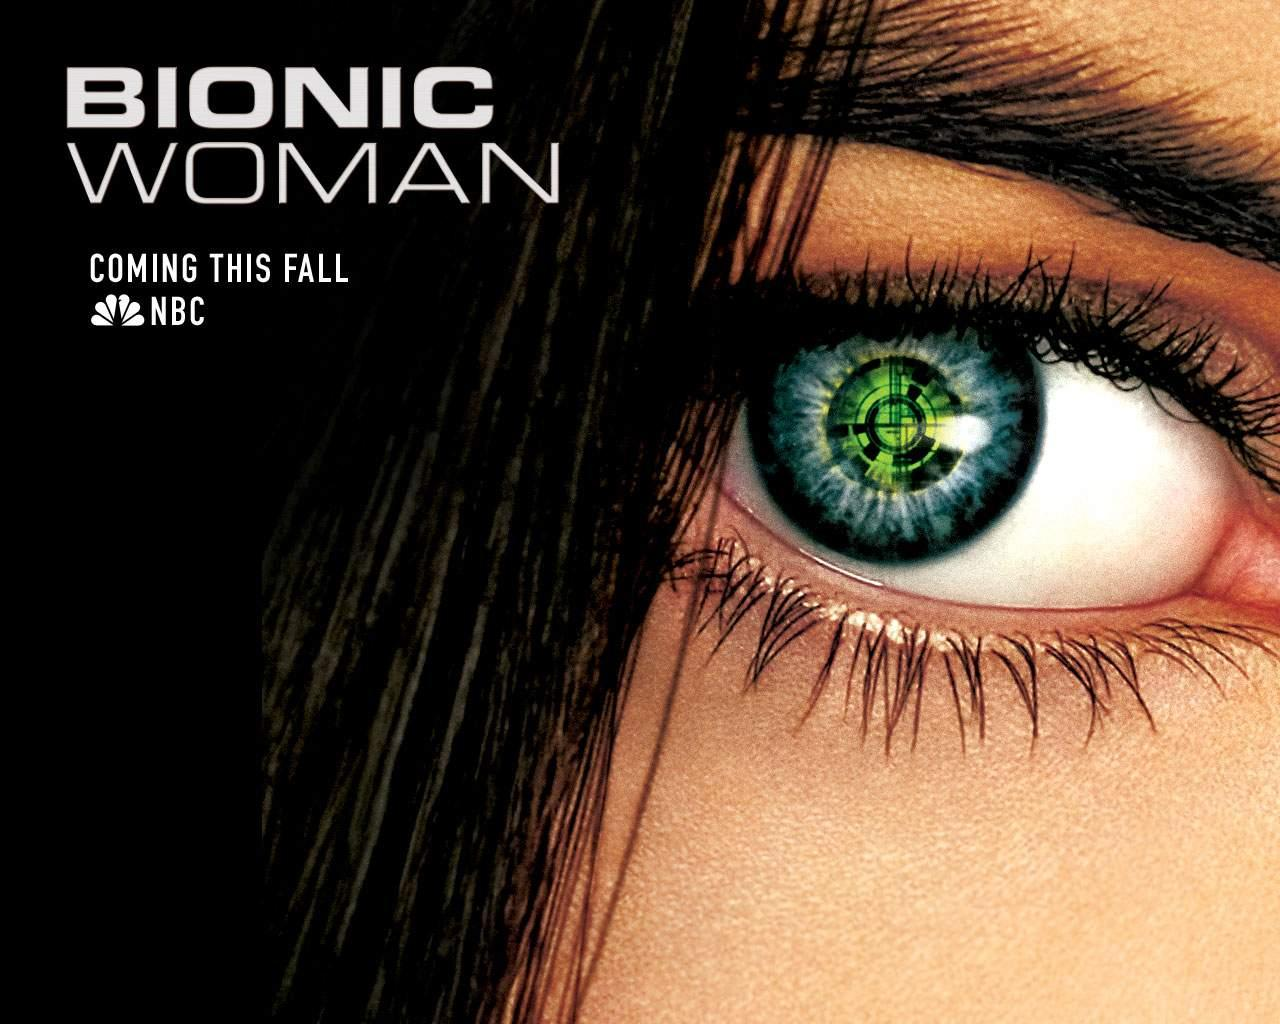 Wallpaper Bionic Woman Michelle Ryan Jaime Sommers Cinema Video